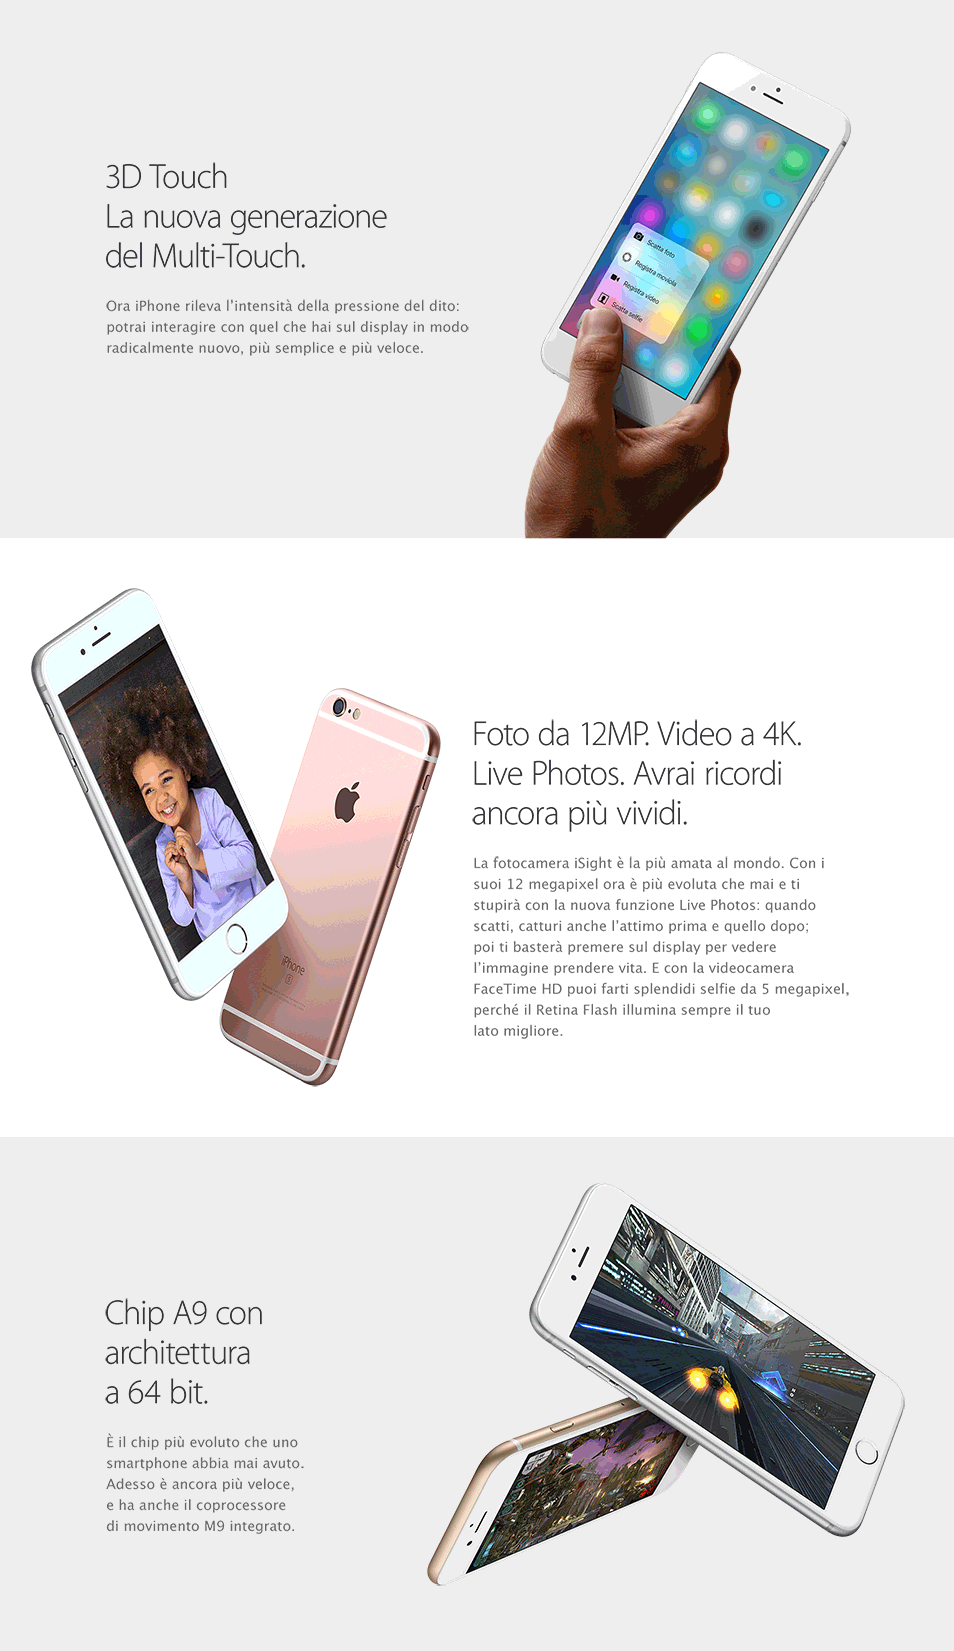 iPhone 6s Vodafone: 3D Touch